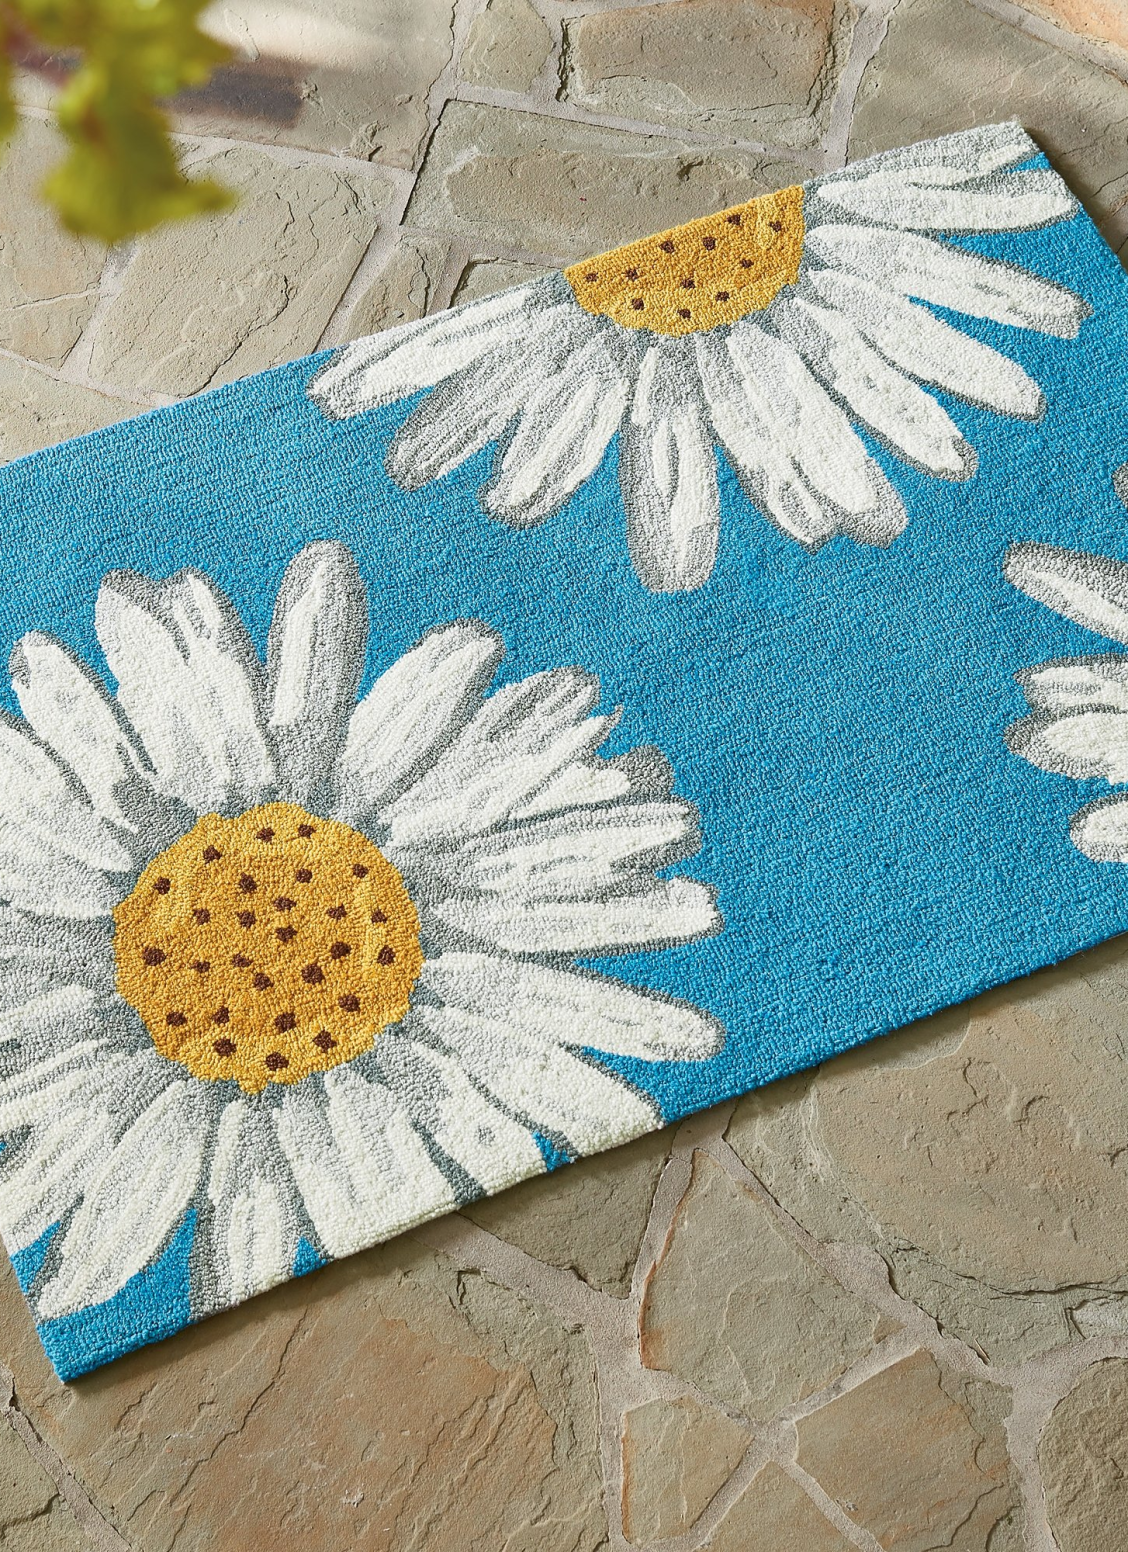 This May Win For Most Cheery Door Mat We Ve Ever Seen So